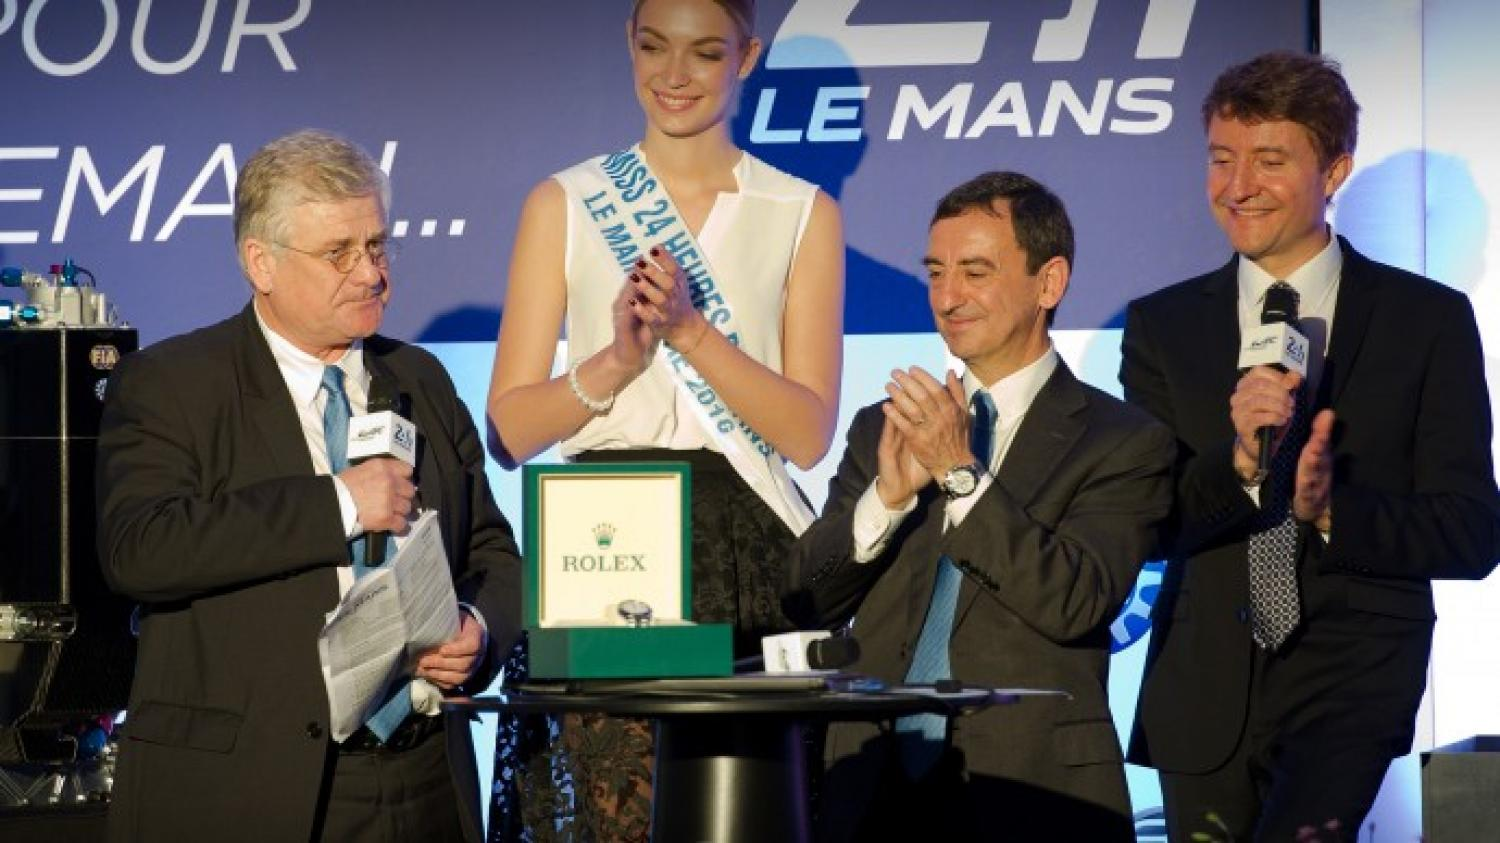 Jacques Nicolet awarded the Spirit of Le Mans trophy